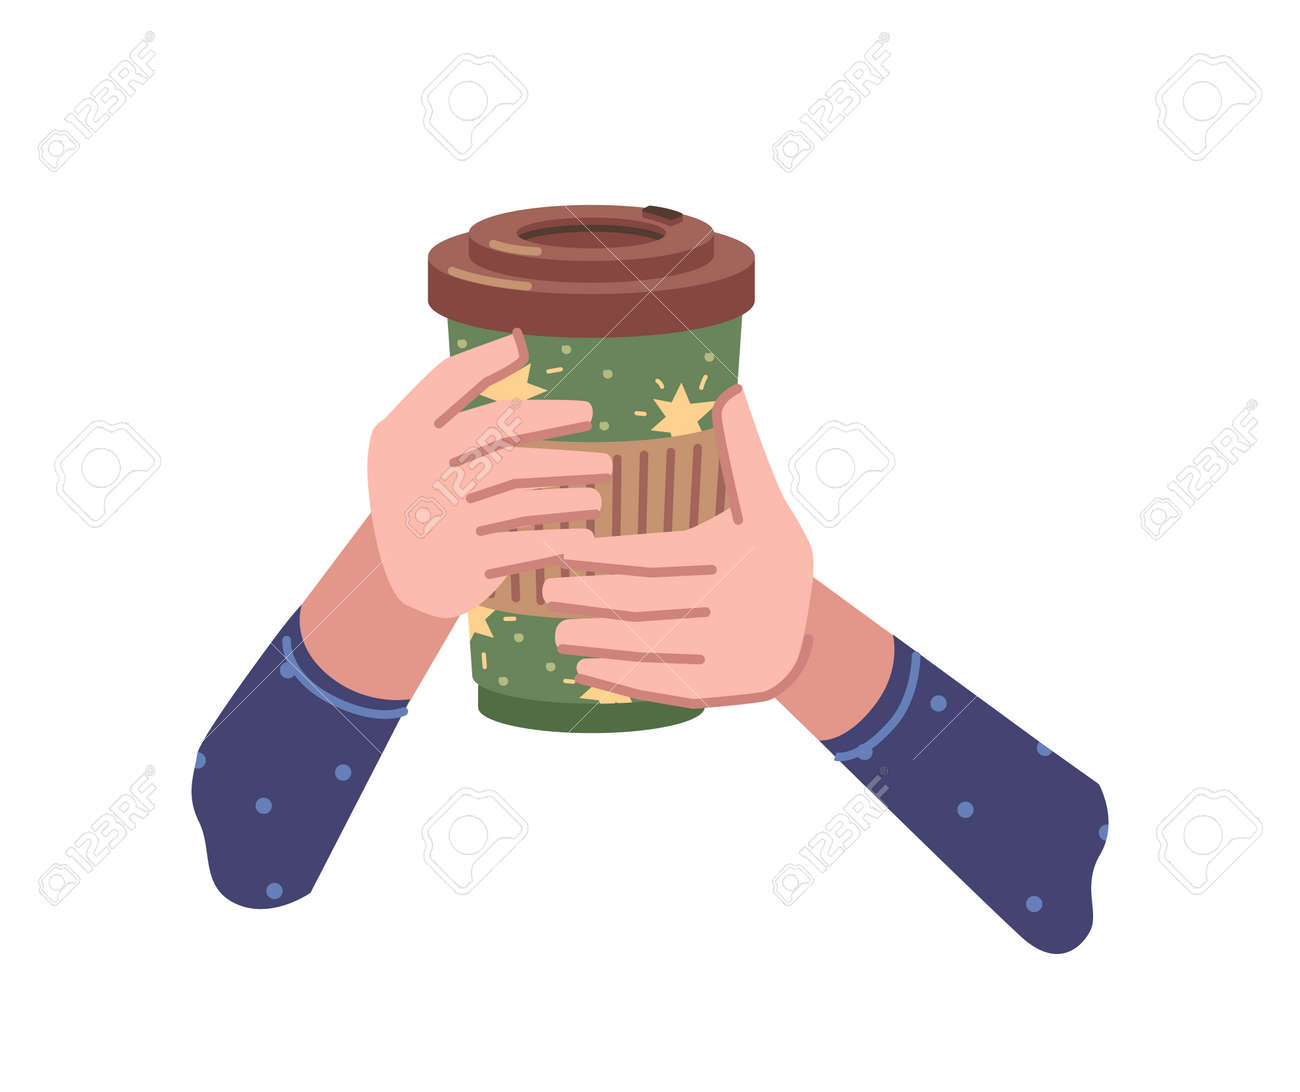 Take away coffee, hot beverage poured in paper or plastic cup. Isolated hands holding tasty drink with lid, chocolate or cappuccino, americano or espresso to go. Vector in flat cartoon style - 171589767